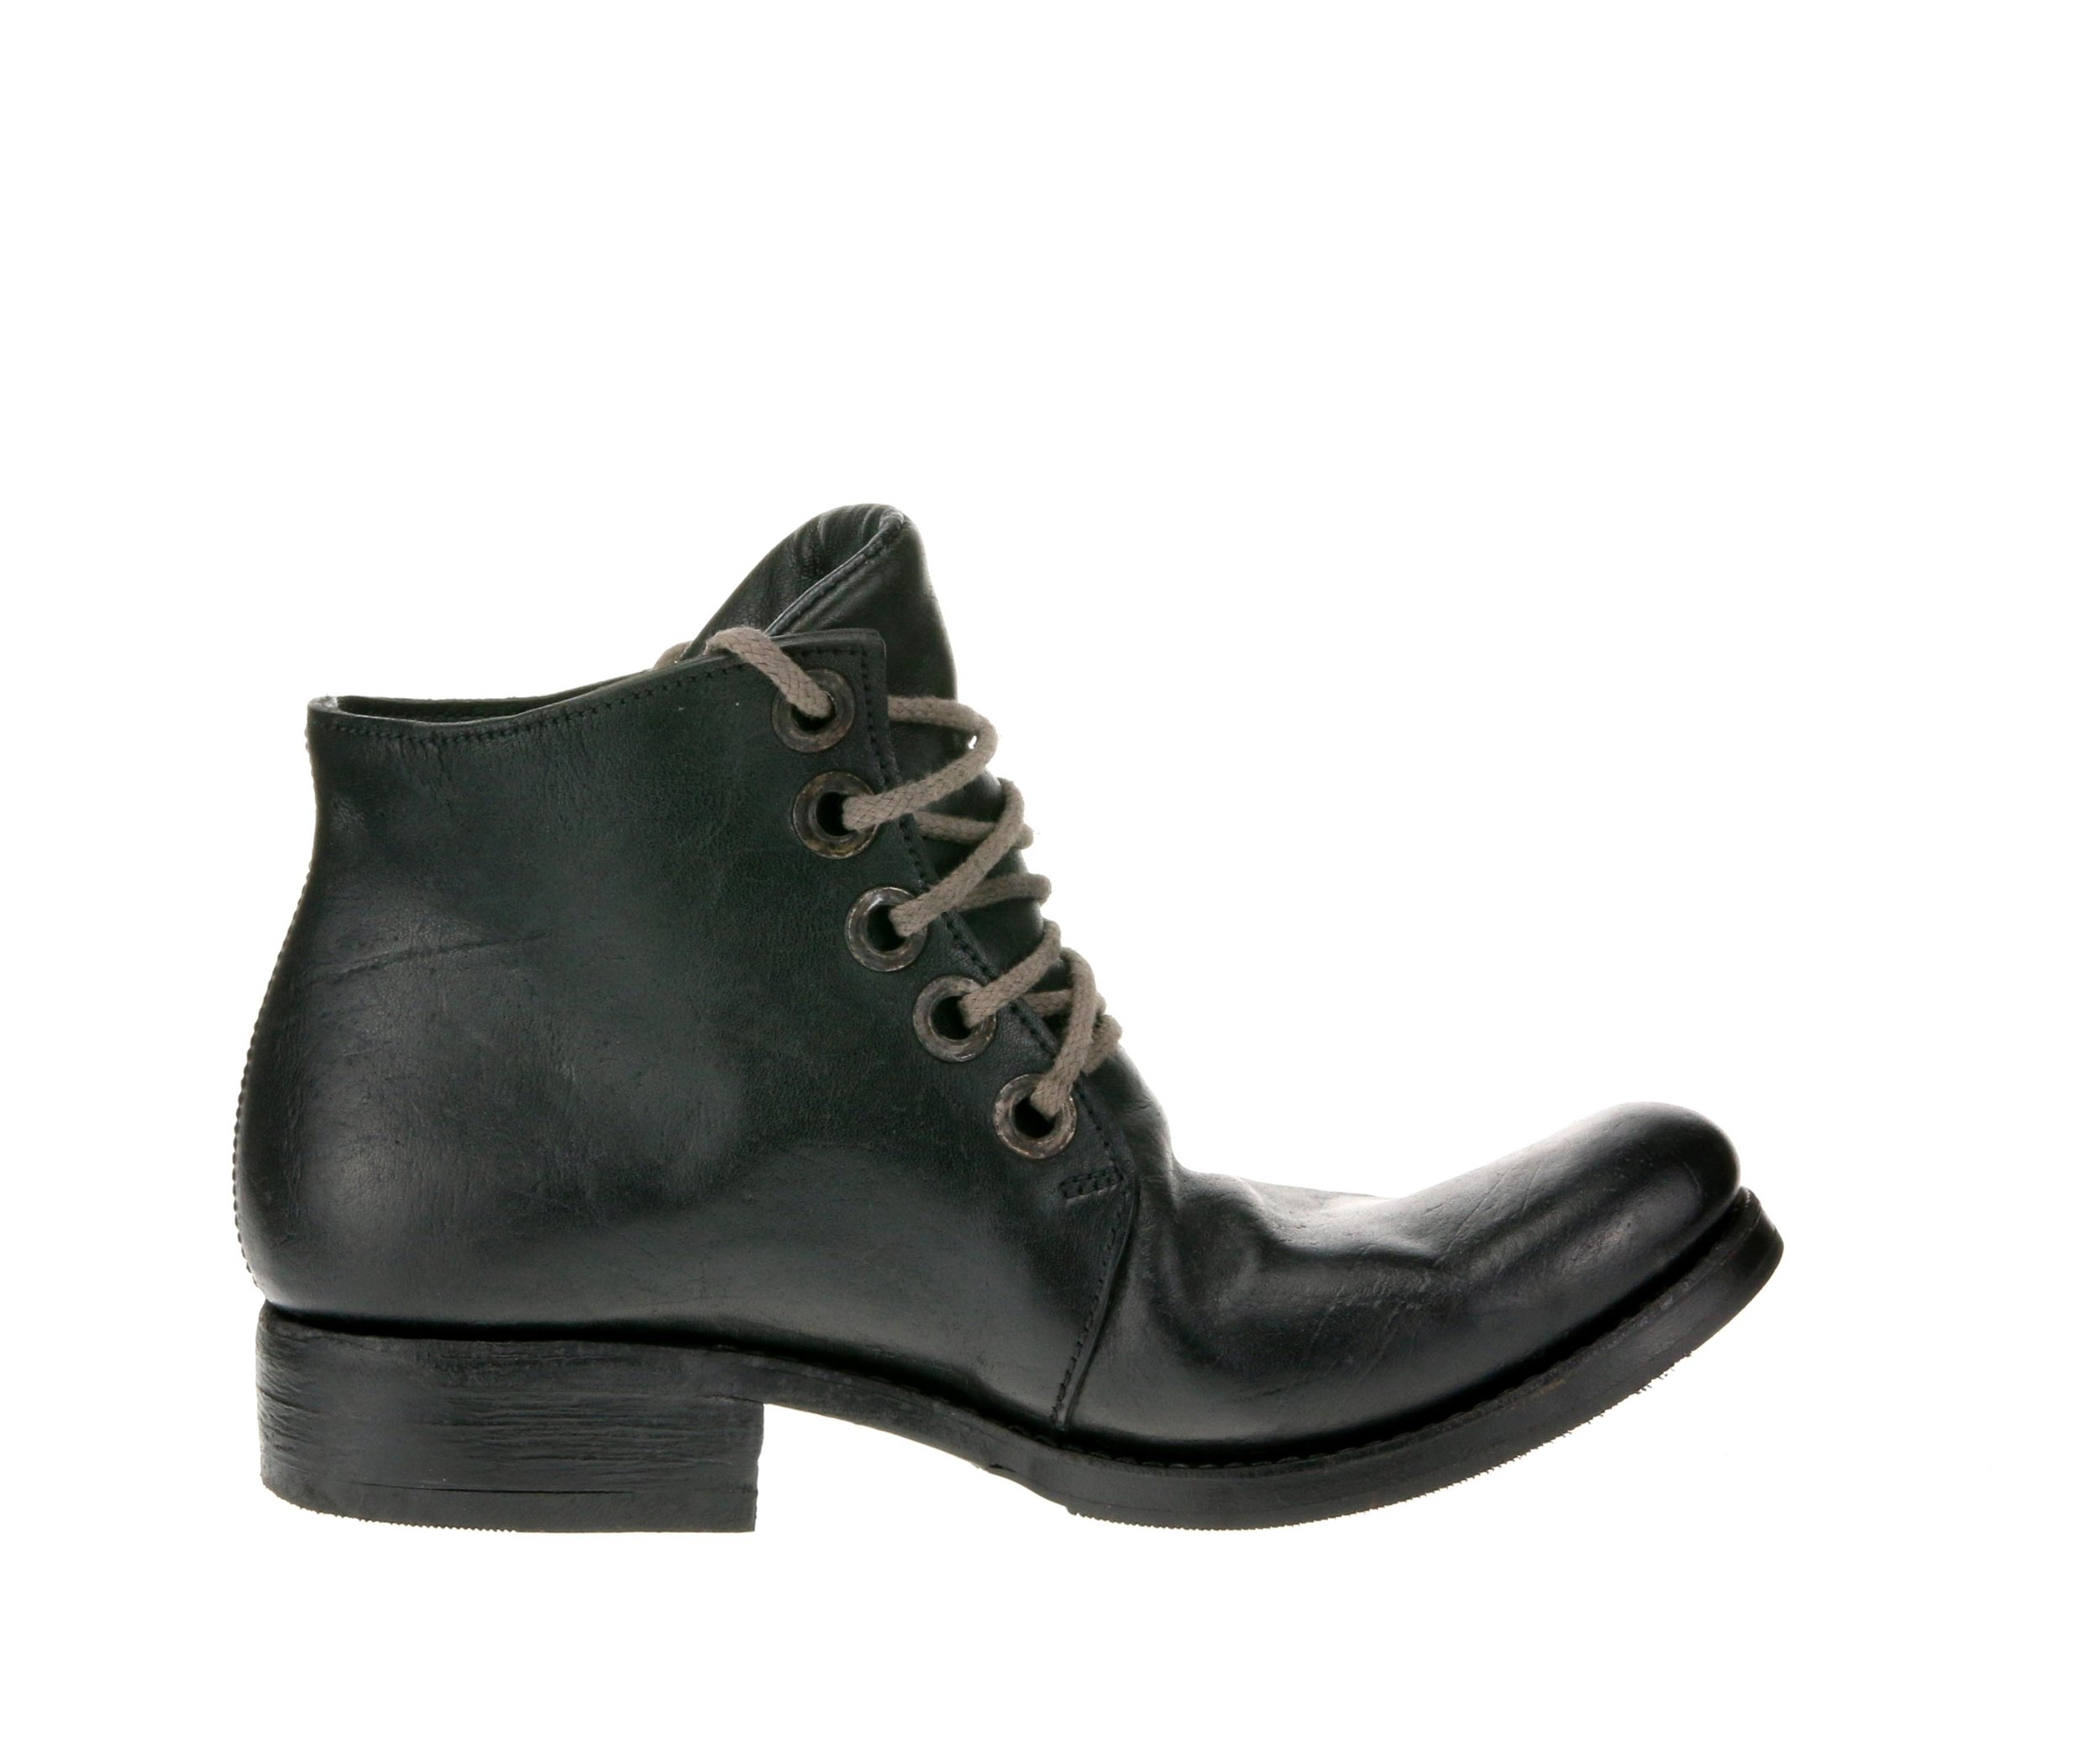 5Hole Work Boot Dark Green